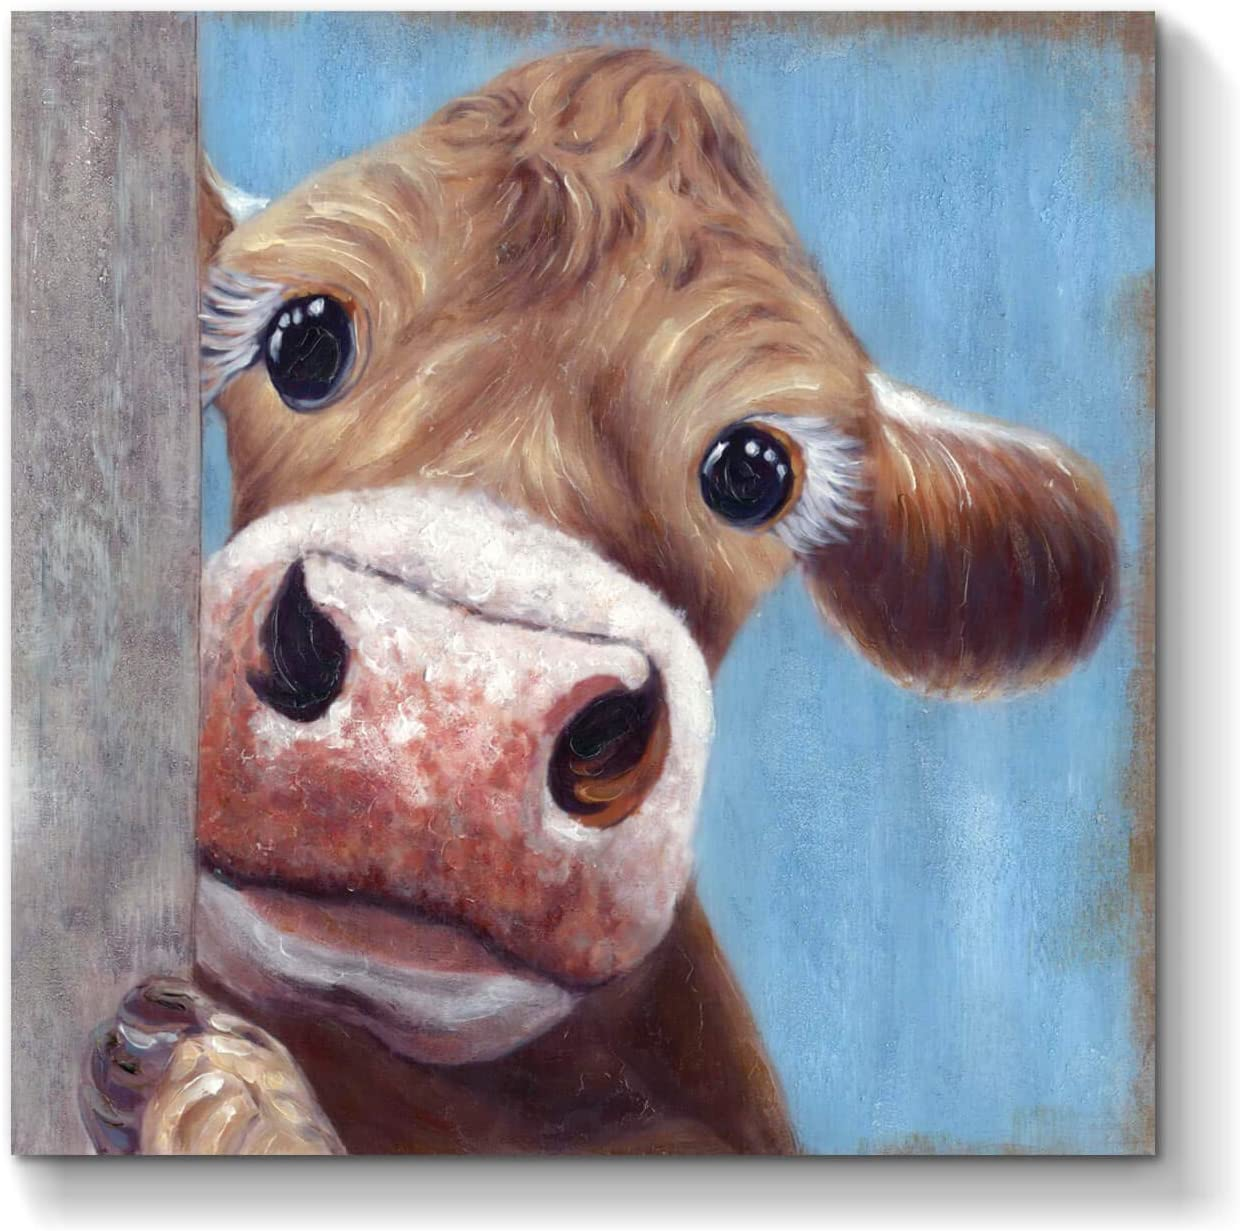 Animal Canvas Art Wall: Cow Artwork Picture Painting on Canvas for Home Decor (24'' x 24'' x 1 Panel)